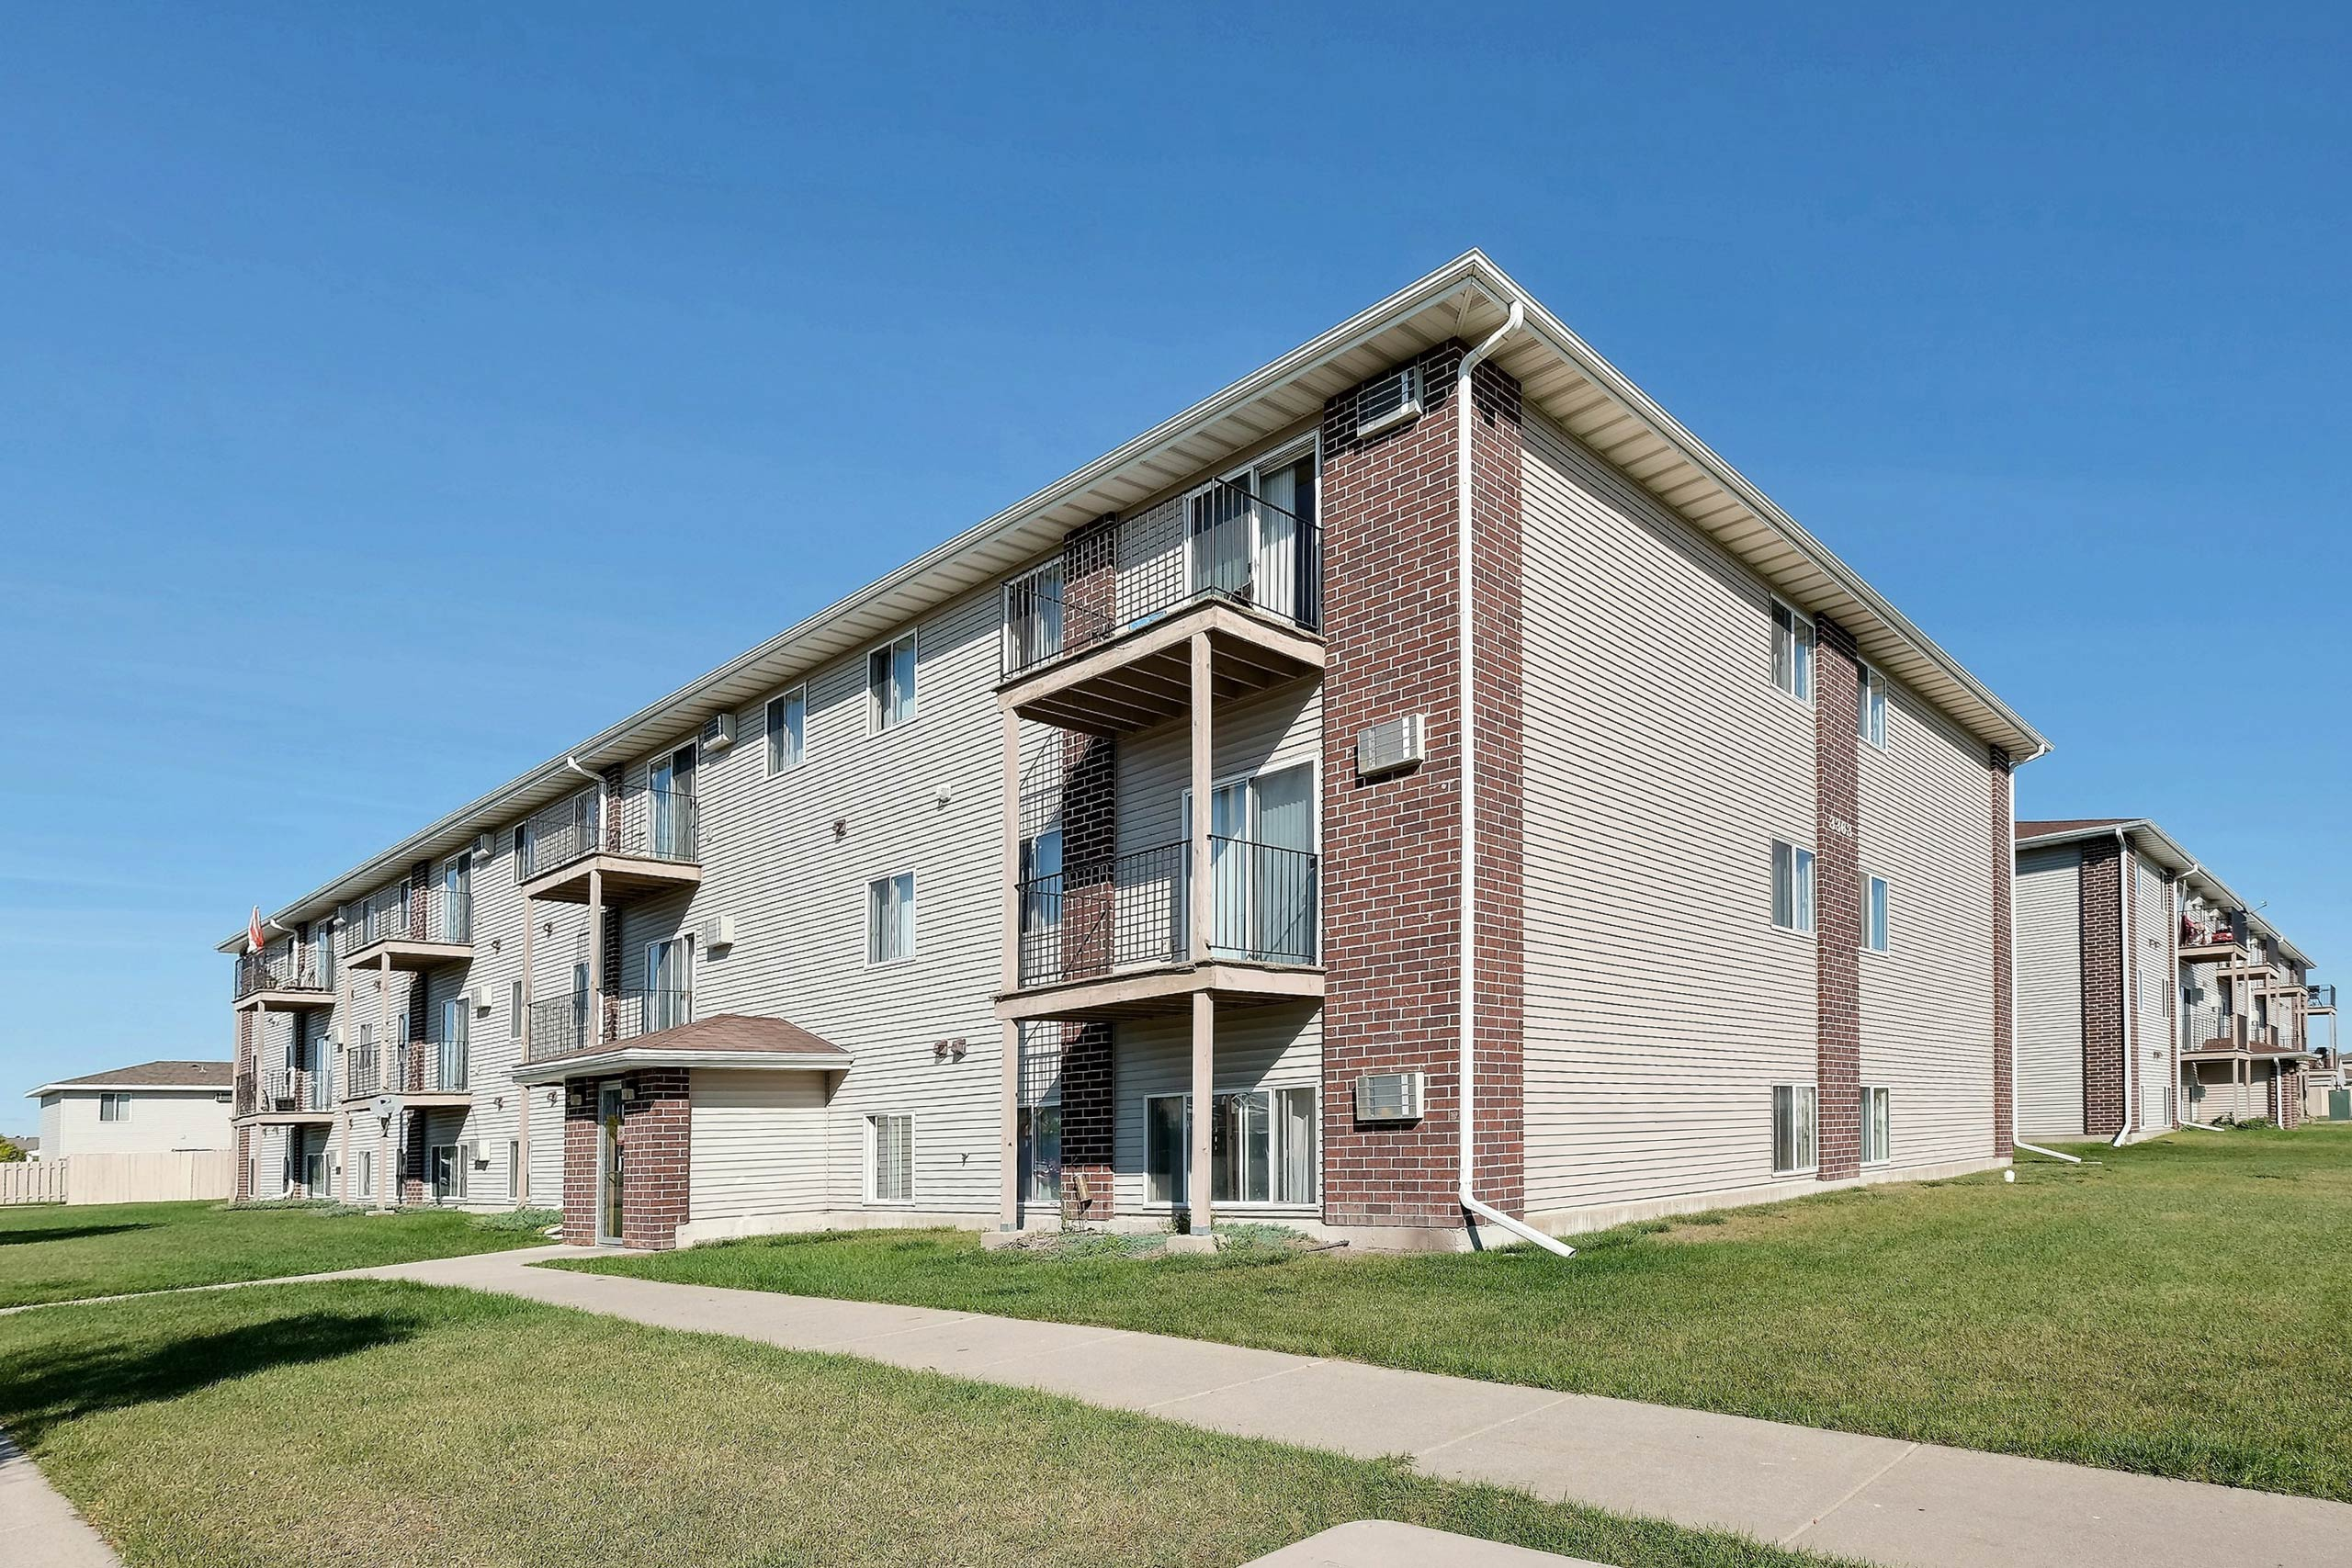 Image of Country Edge Apartments in Fargo, North Dakota